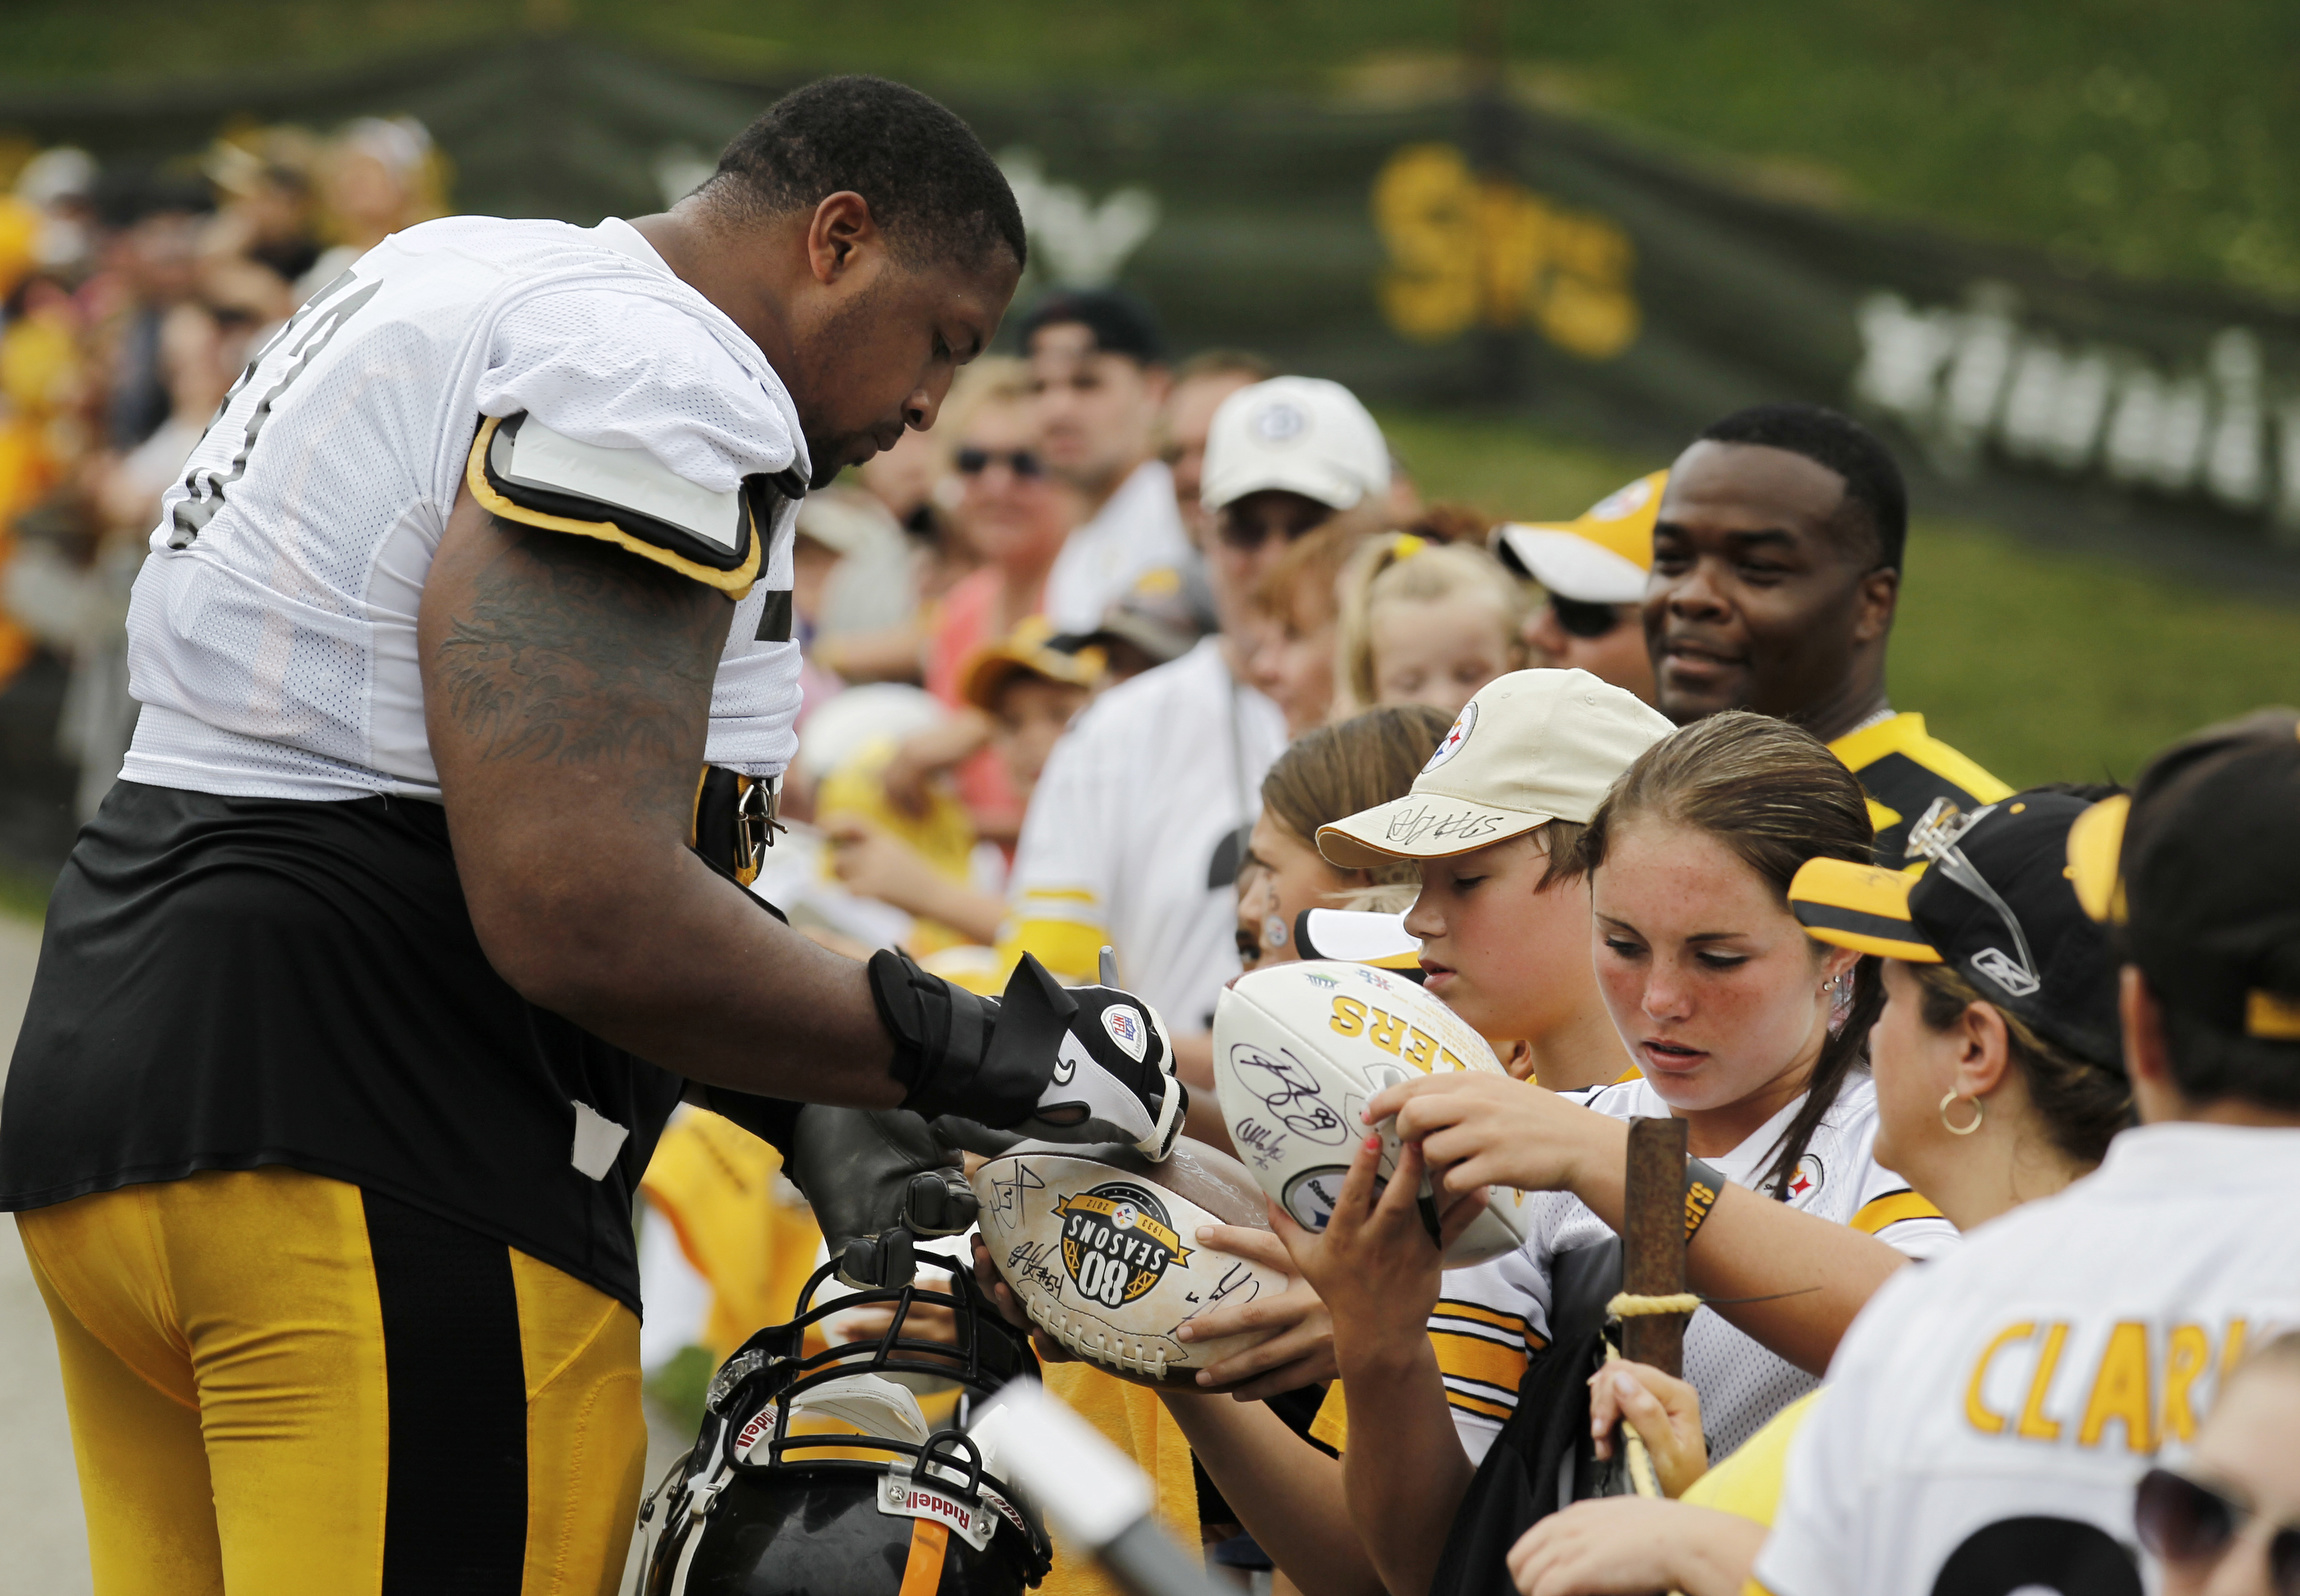 Pittsburgh Steelers offensive guard signs autographs after training session on campus of St. Vincent College in Pennsylvania